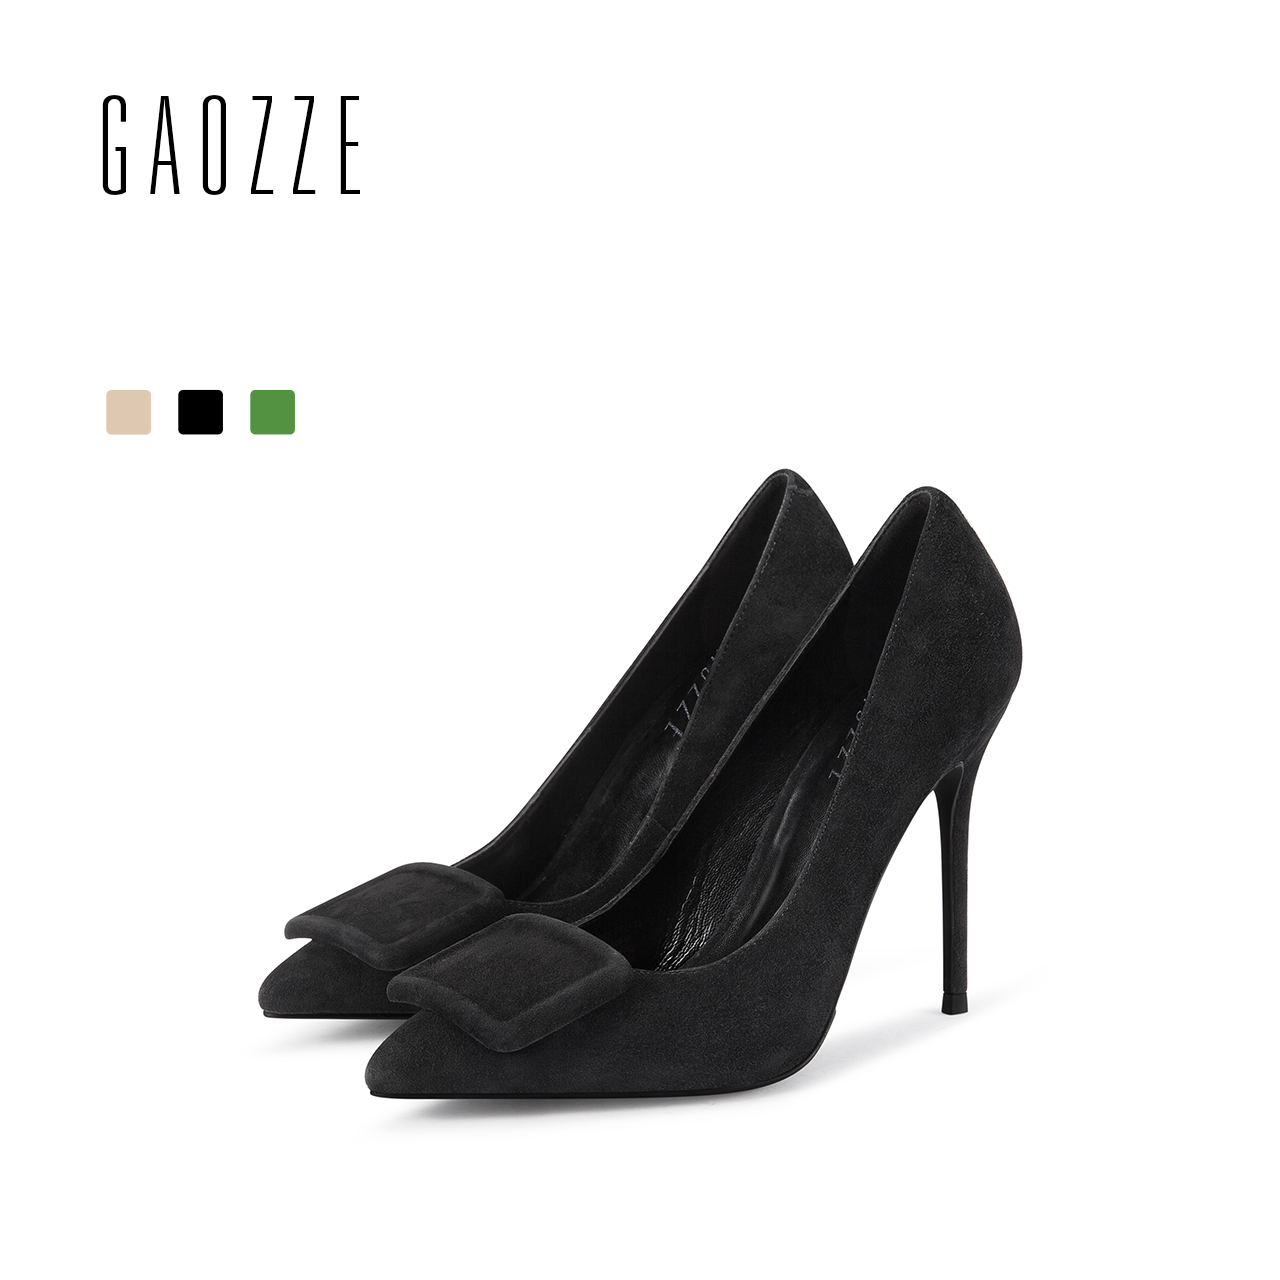 GAOZZE Fashion Buckle Women Pumps Shoes 2018 Spring New Suede Leather Pointed Toe Sexy High Heel Women Black Formal Dress Shoes black smooth leather women pointed toe ankle buckle pumps deep v back ladies blade heel shoes spring fashion female dress shoes